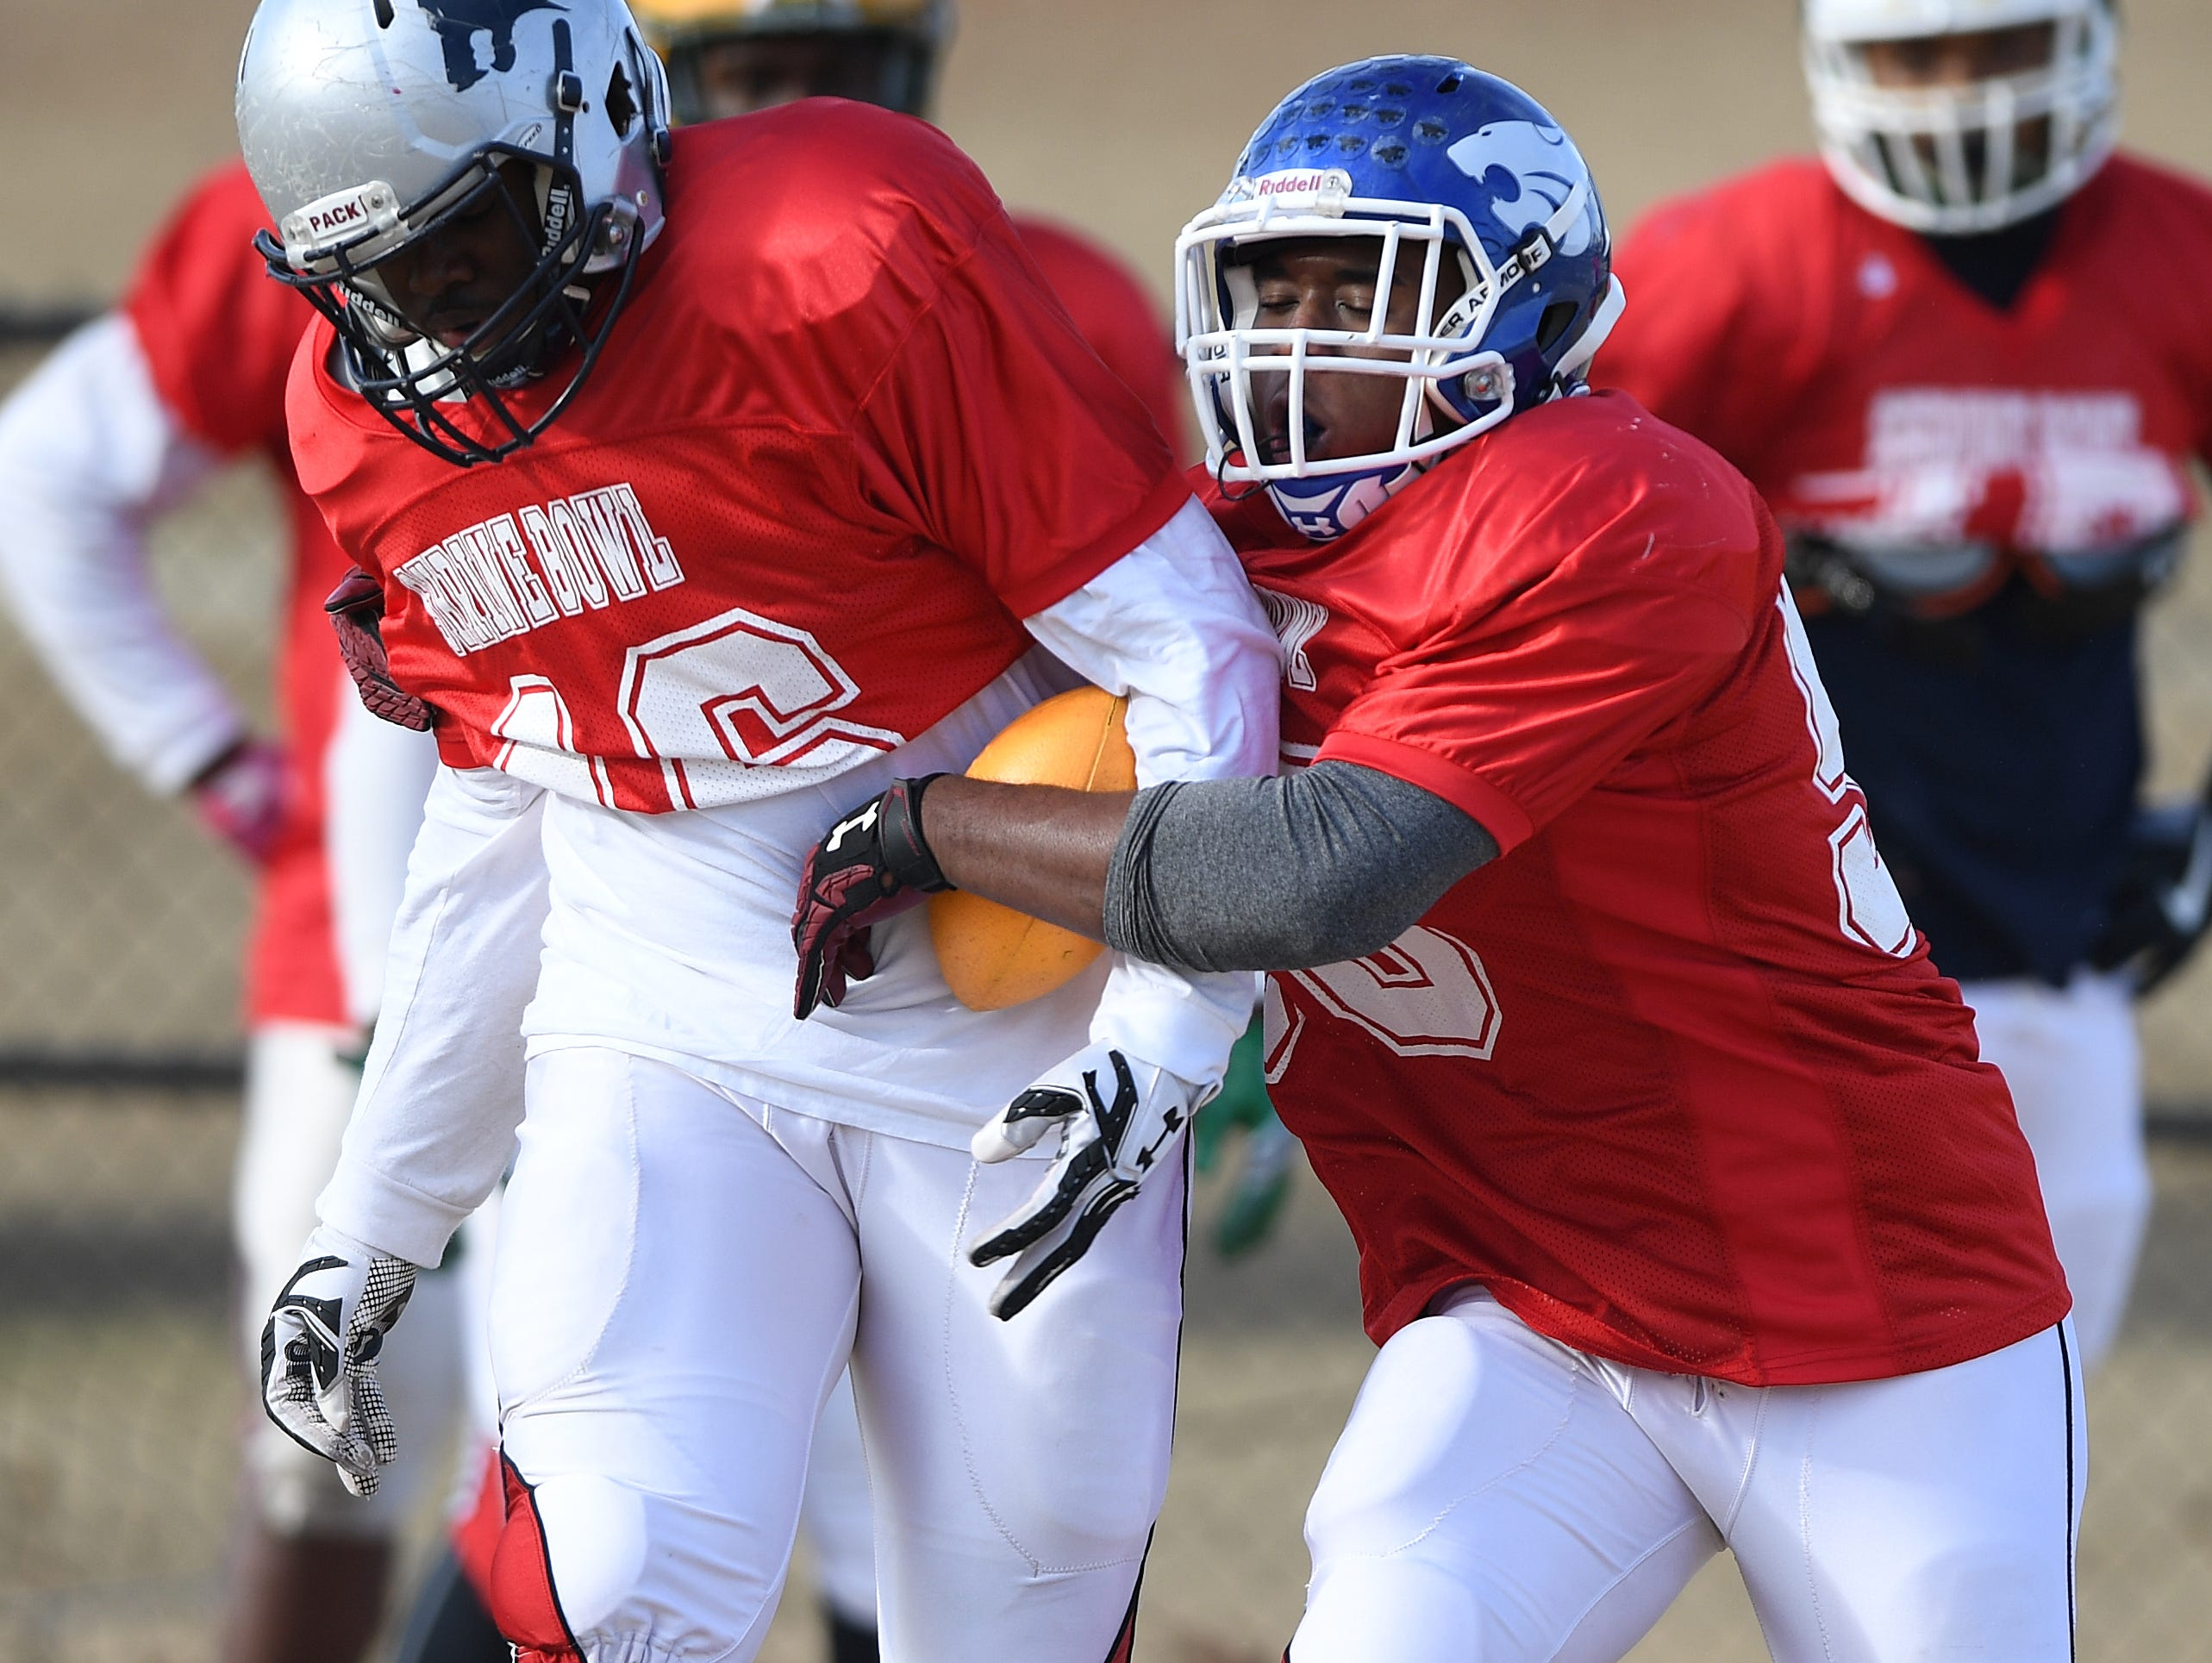 Woodmont's Davonne Bowen (90) strips the ball from Dillion's Jermaine McDaniel (46) during a drill at Shrine Bowl practice at Dorman High on Monday, Dec. 12, 2016.